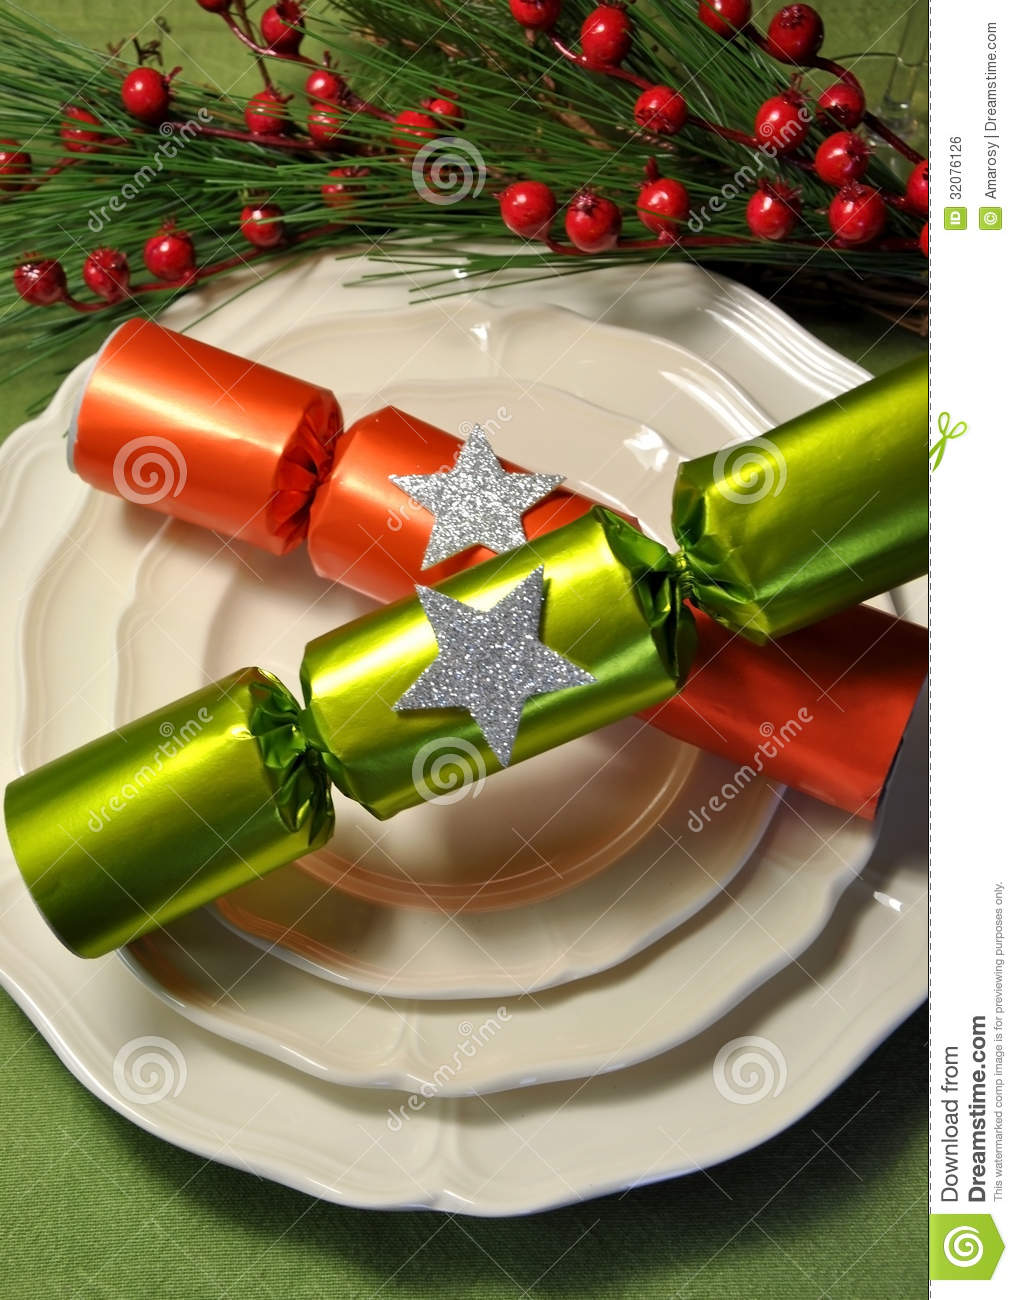 Green Theme Christmas Dining Table Setting With Fine China  : green theme christmas dining table setting fine china plates christmas bon bon crackers decorative festive holly 32076126 from www.dreamstime.com size 1018 x 1300 jpeg 175kB